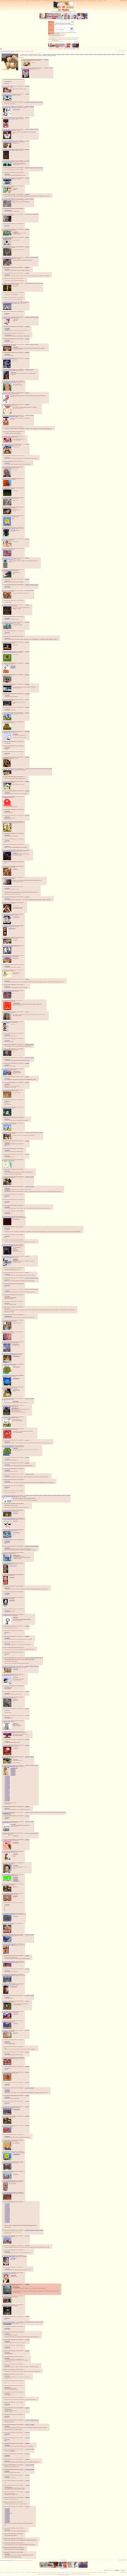 The Best Ever Thread on 4chan : OP : Free Download, Borrow, and